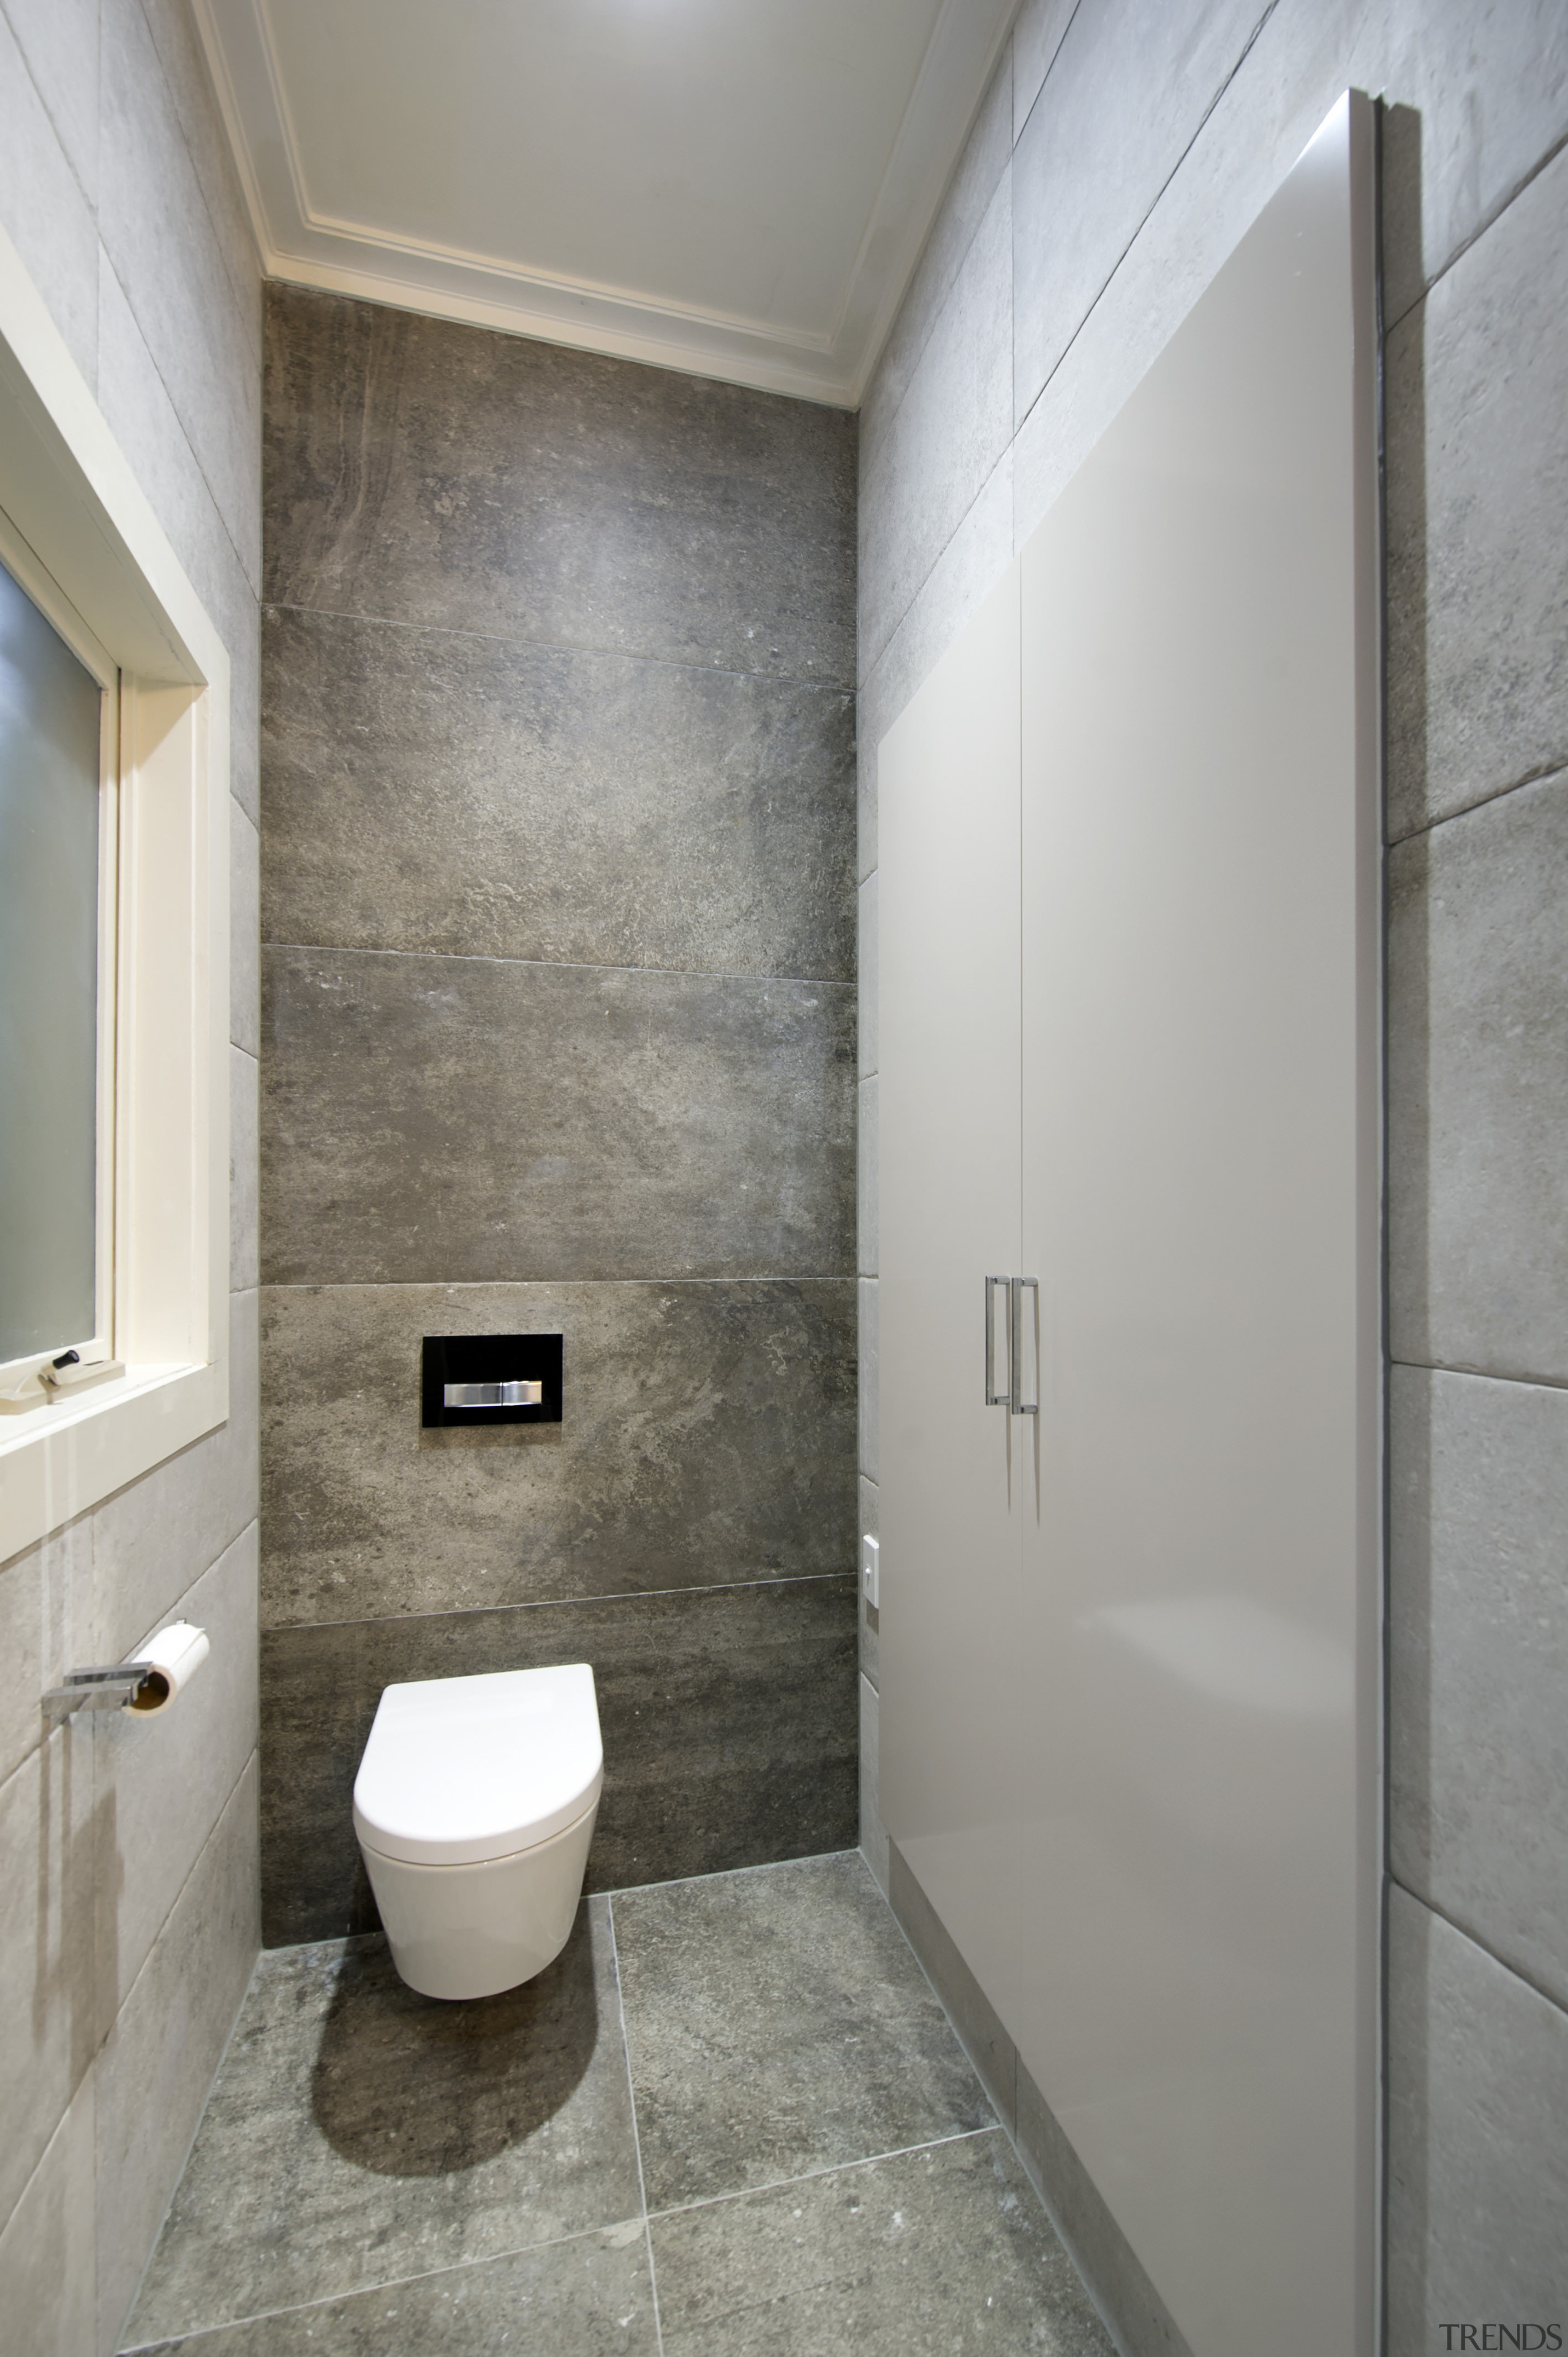 In this project by Bubbles Bathrooms, the toilet architecture, bathroom, daylighting, floor, interior design, plumbing fixture, real estate, room, tile, toilet, wall, gray